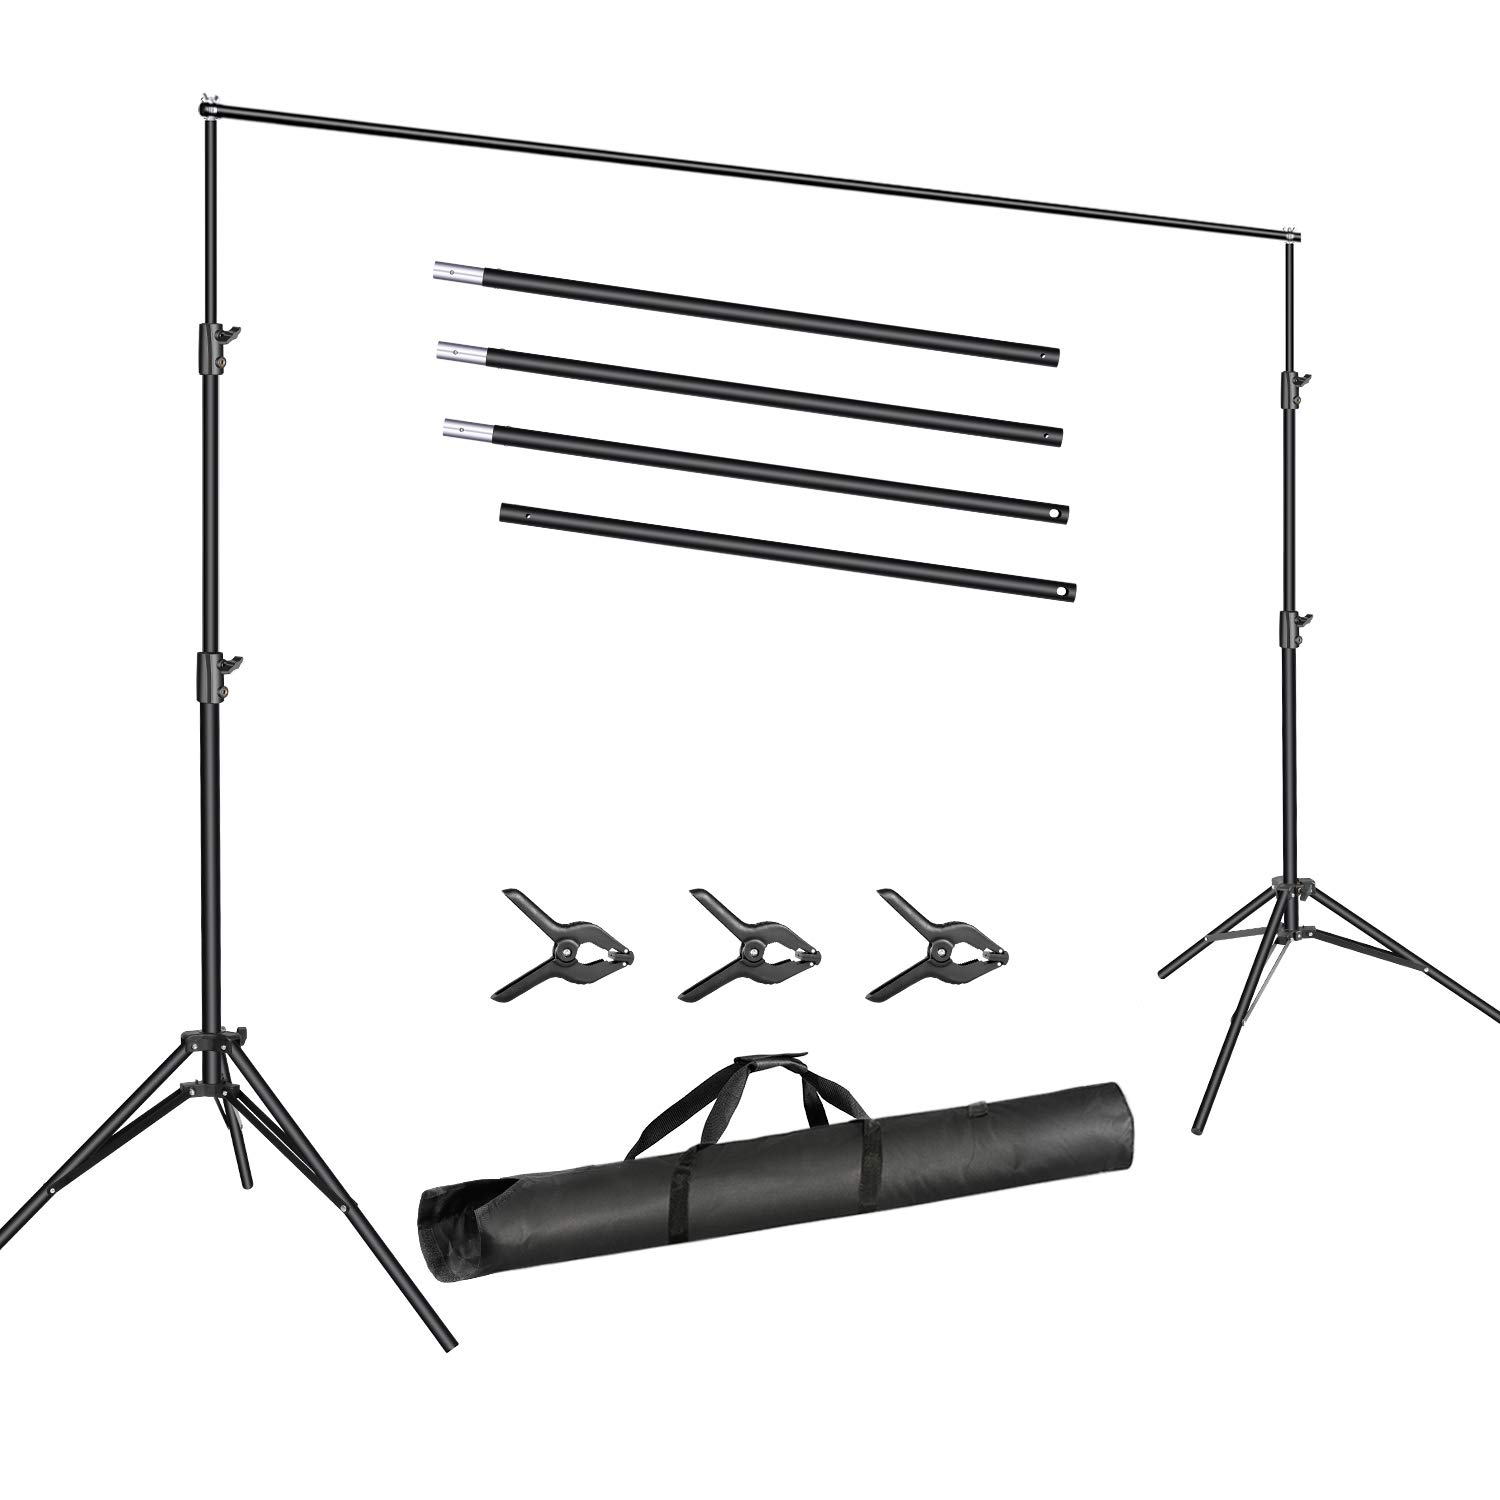 Neewer Photo Video Studio 10ft/3m Wide Cross Bar 6.6ft/2m Tall Adjustable Background Stand Backdrop Support System Kit with 3 Backdrop Clamps and Carrying Bag for Portrait Product Video Photography by Neewer